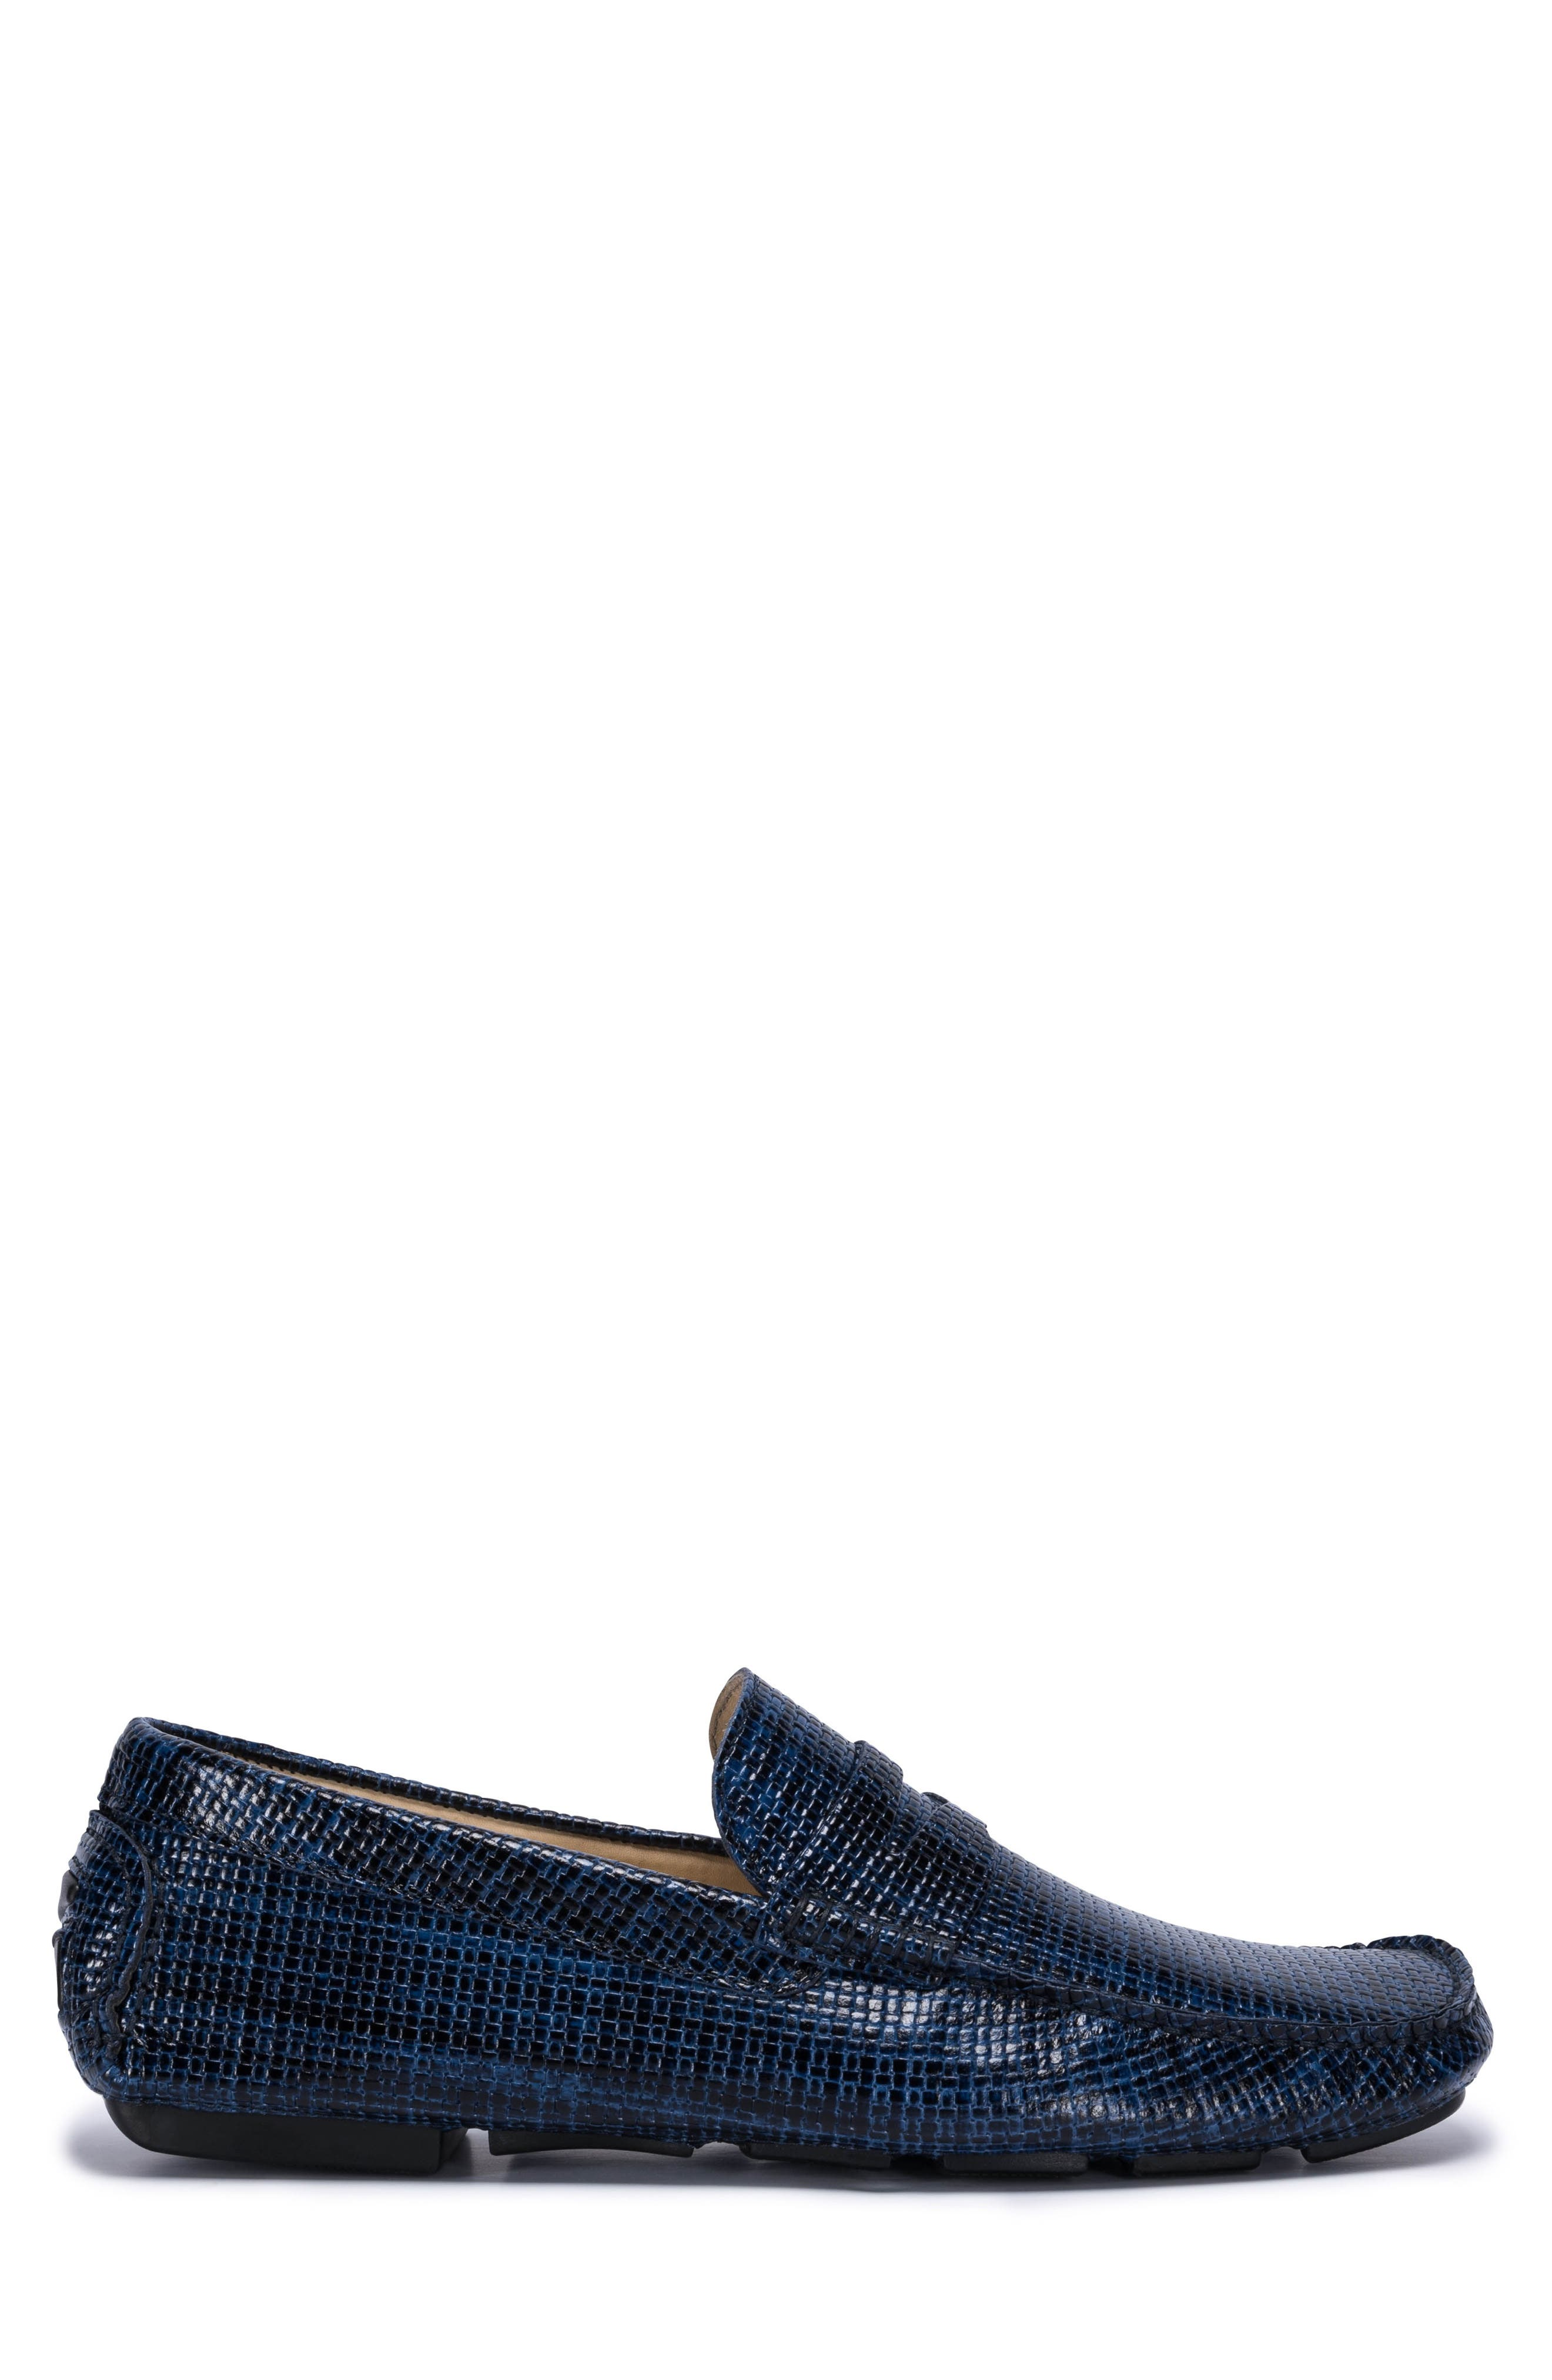 Montalcino Driving Penny Loafer,                             Alternate thumbnail 3, color,                             Blue Leather